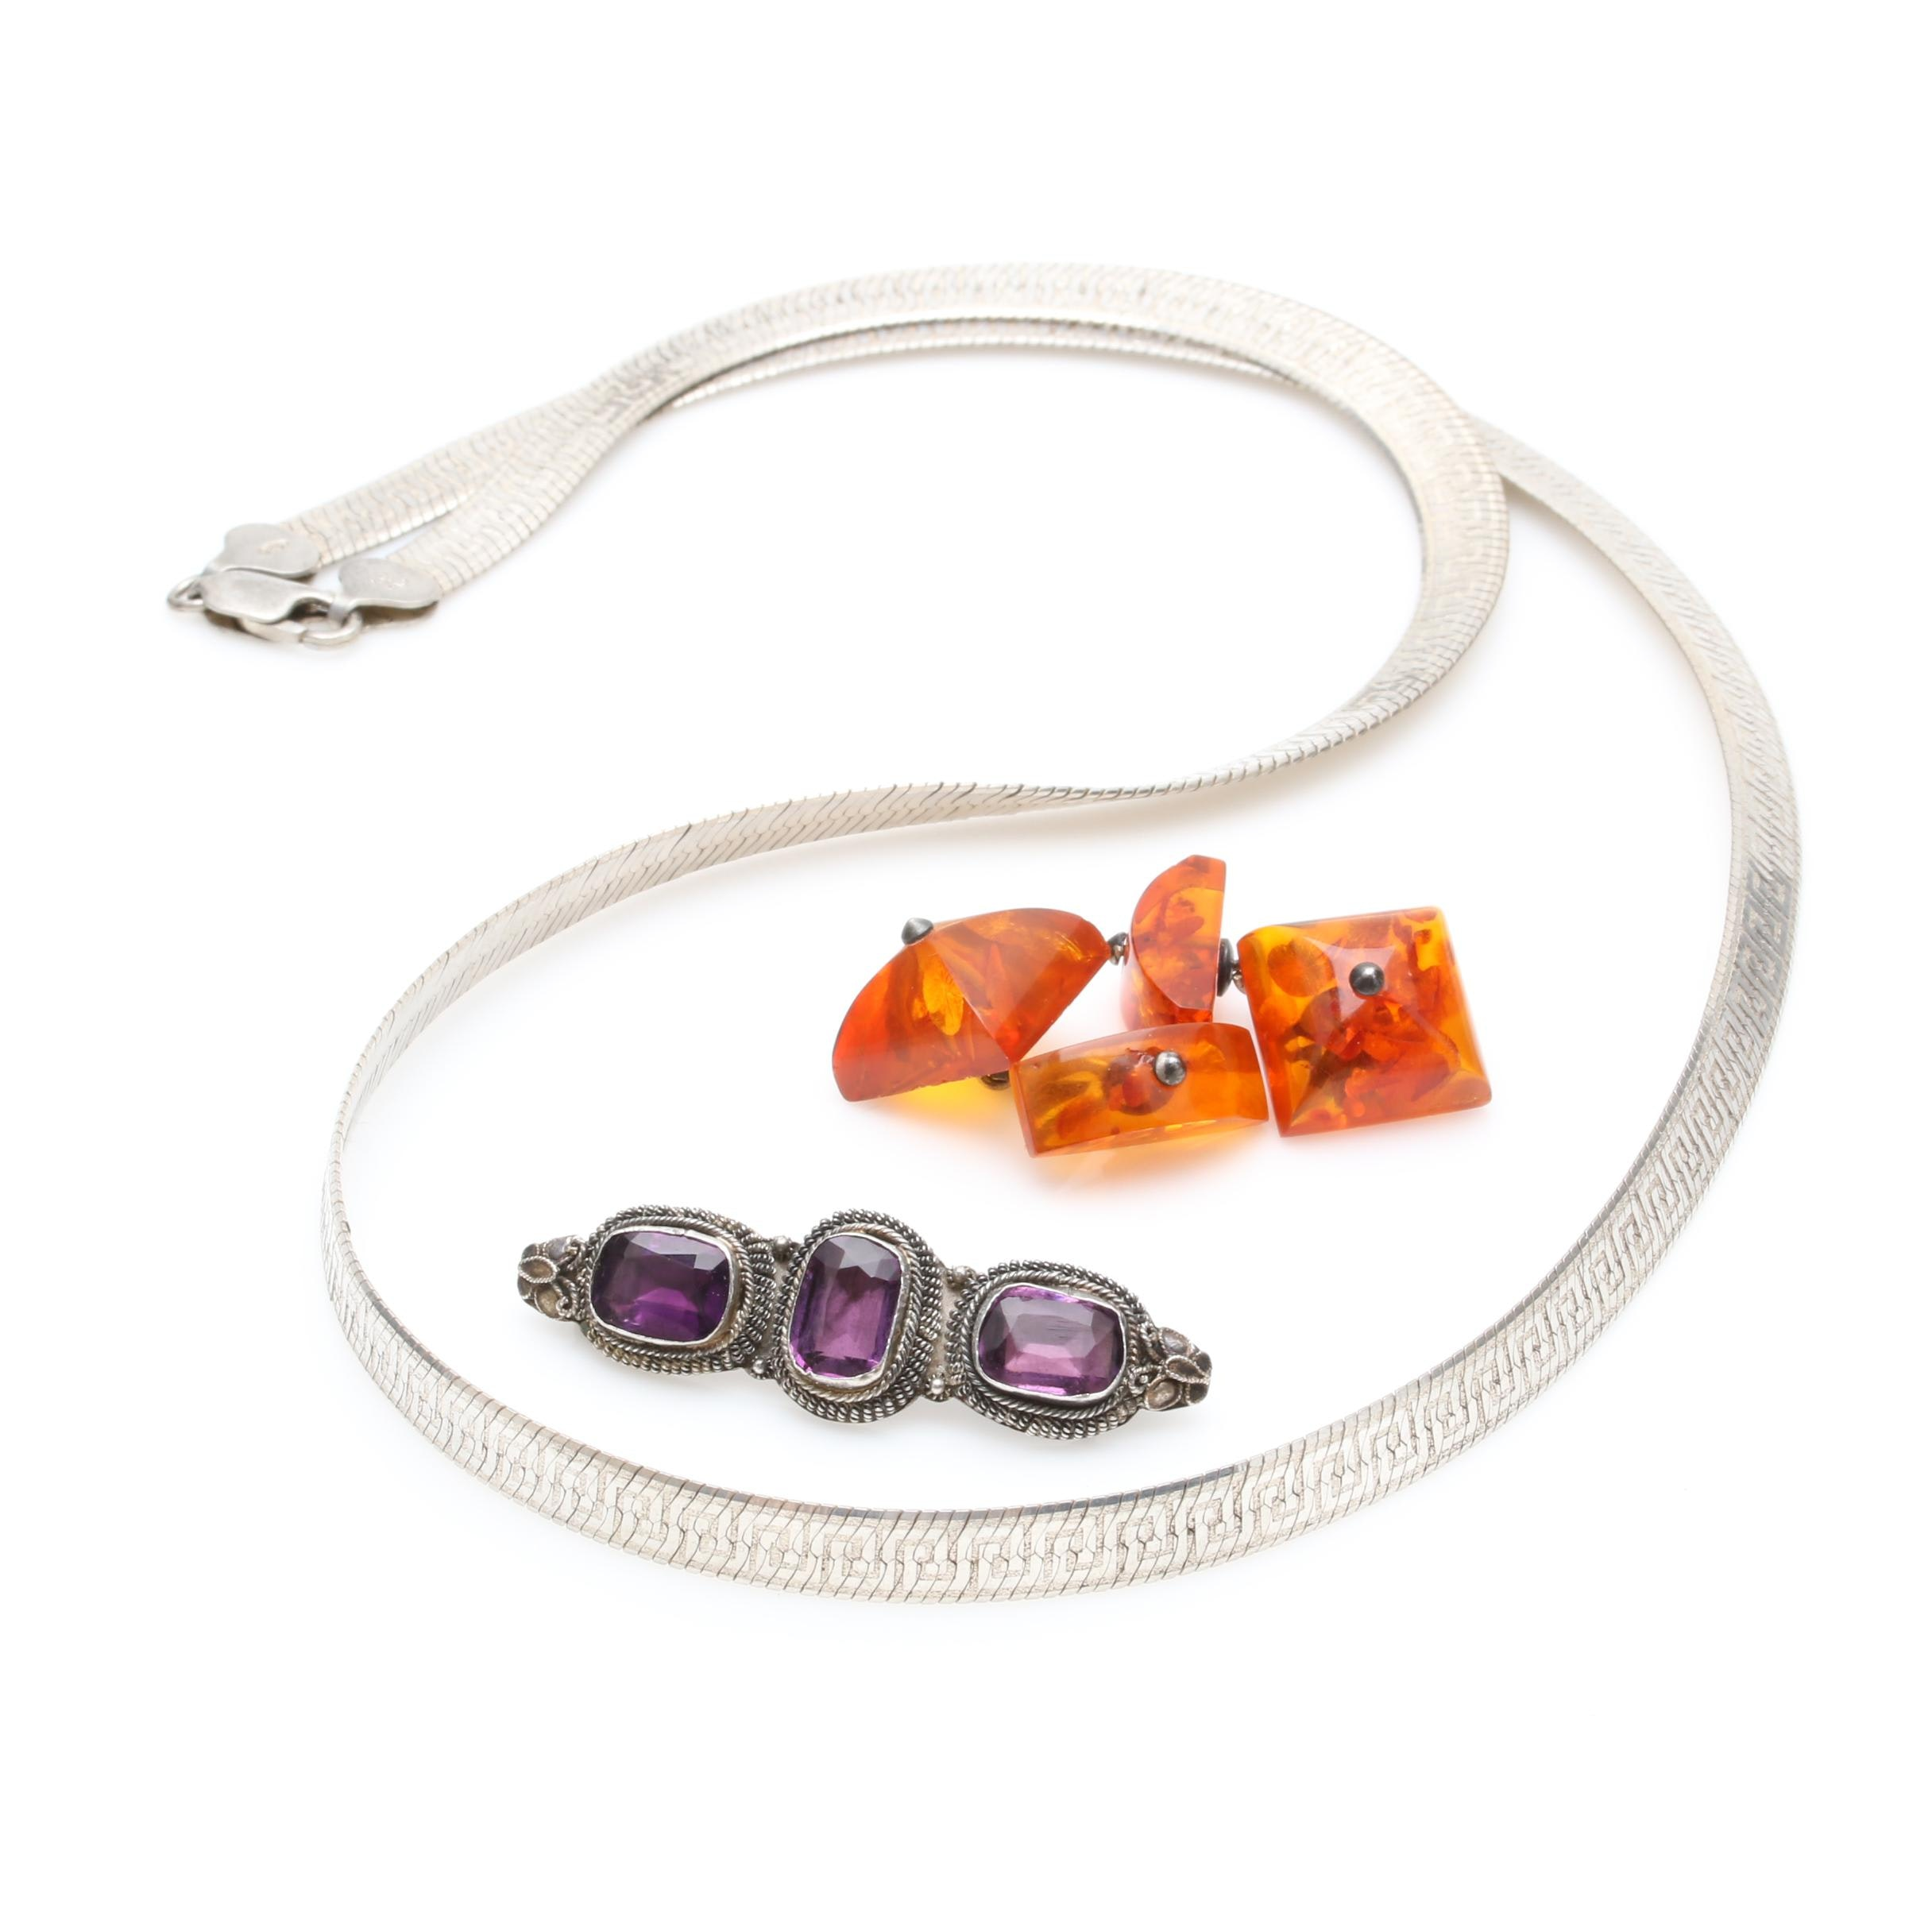 Sterling Silver and 875 Silver Amber and Glass Necklace, Brooch and Cufflinks